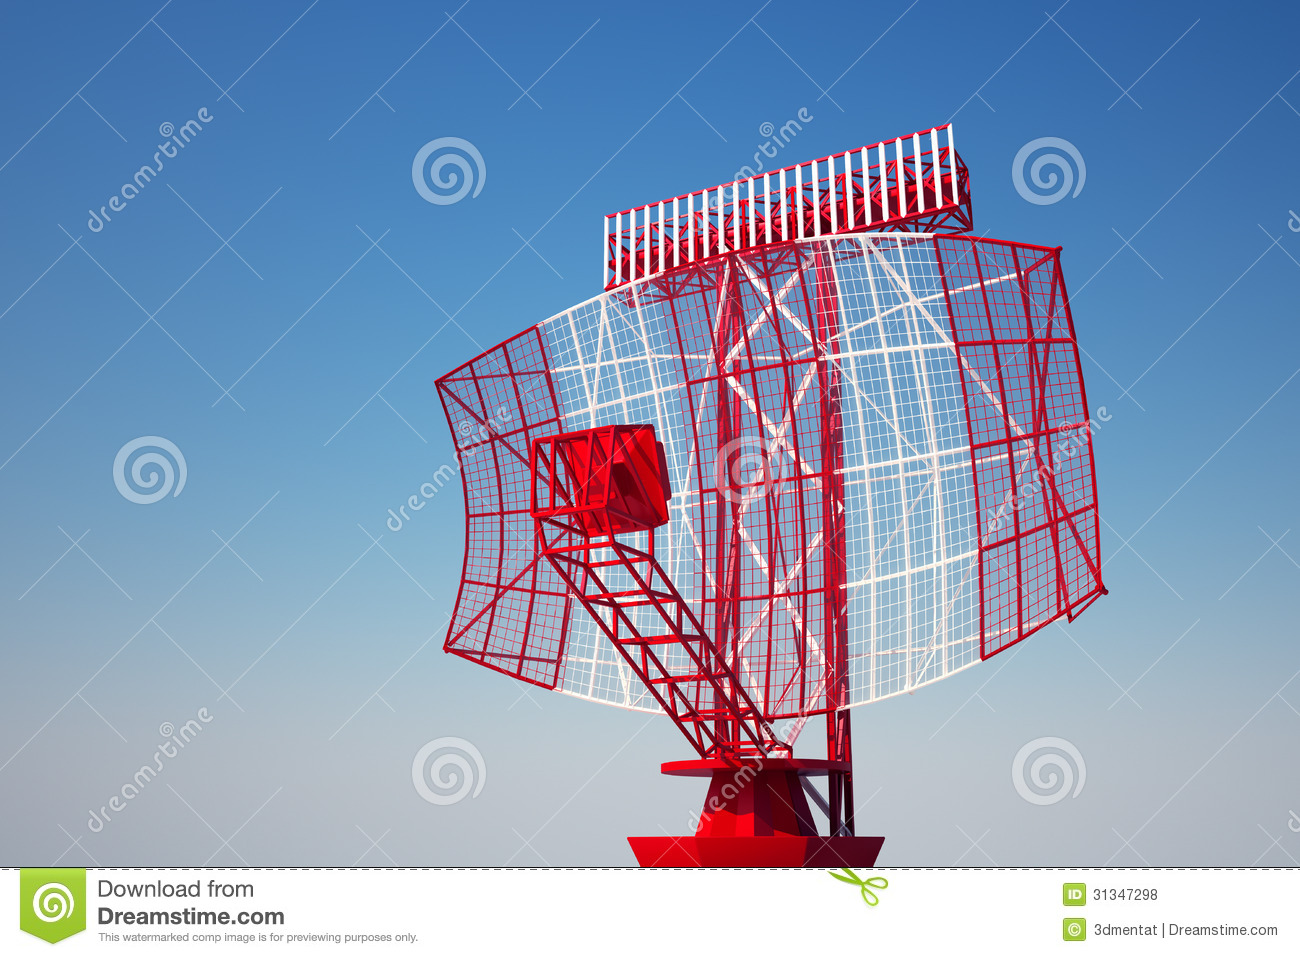 airport radar  stock illustration  illustration of airline